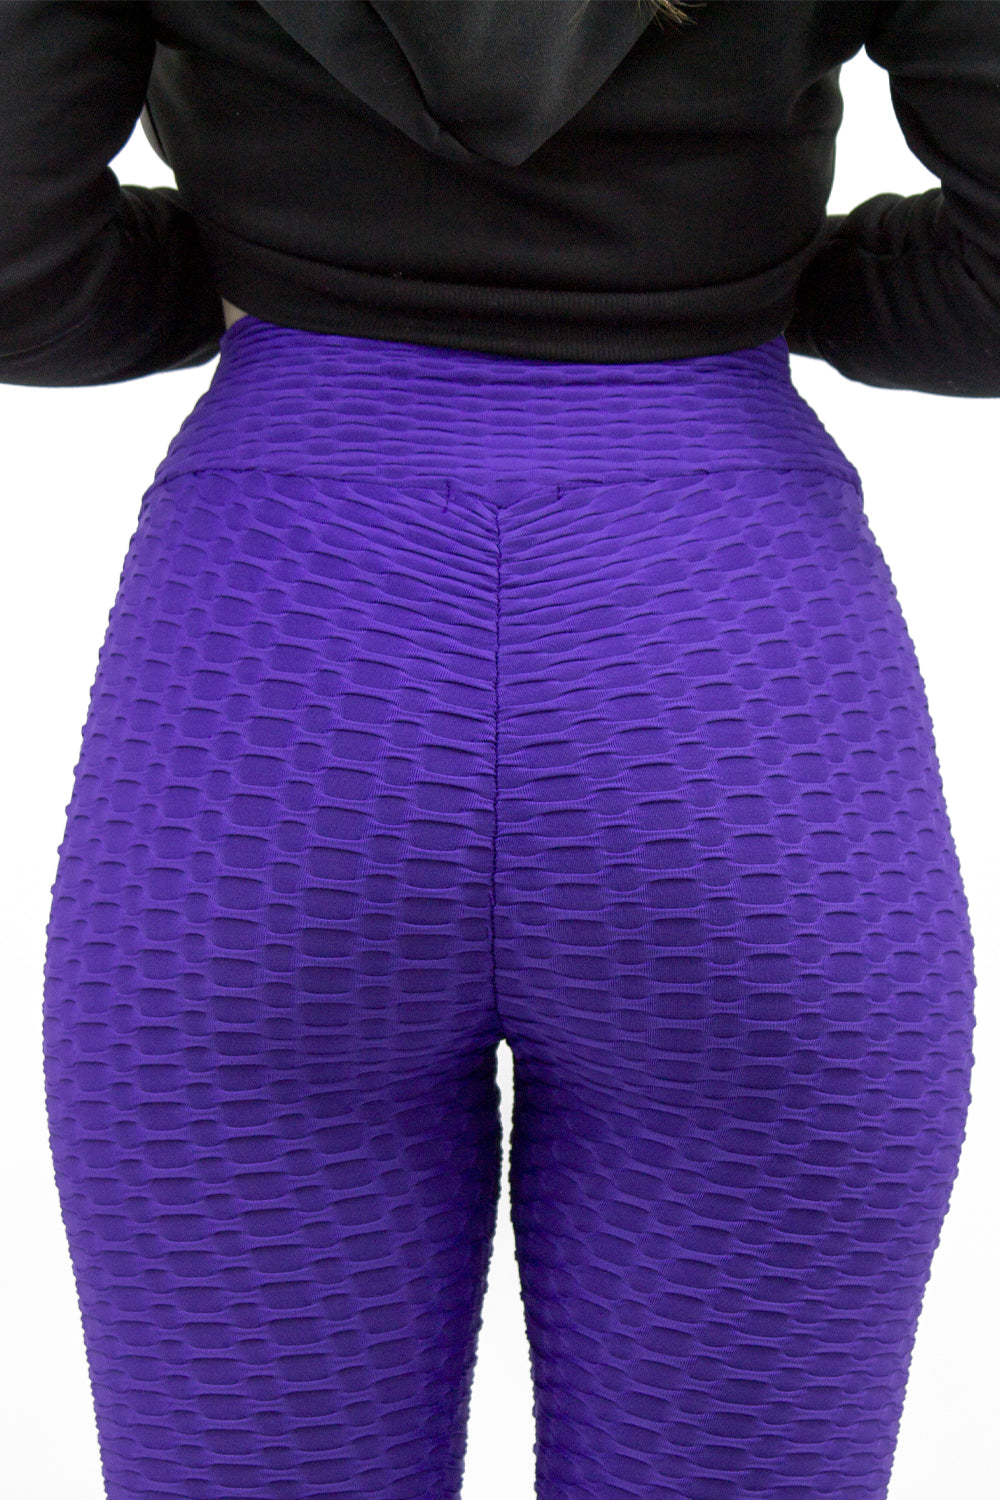 Purple Ruched Textured Active leggings - Daniella